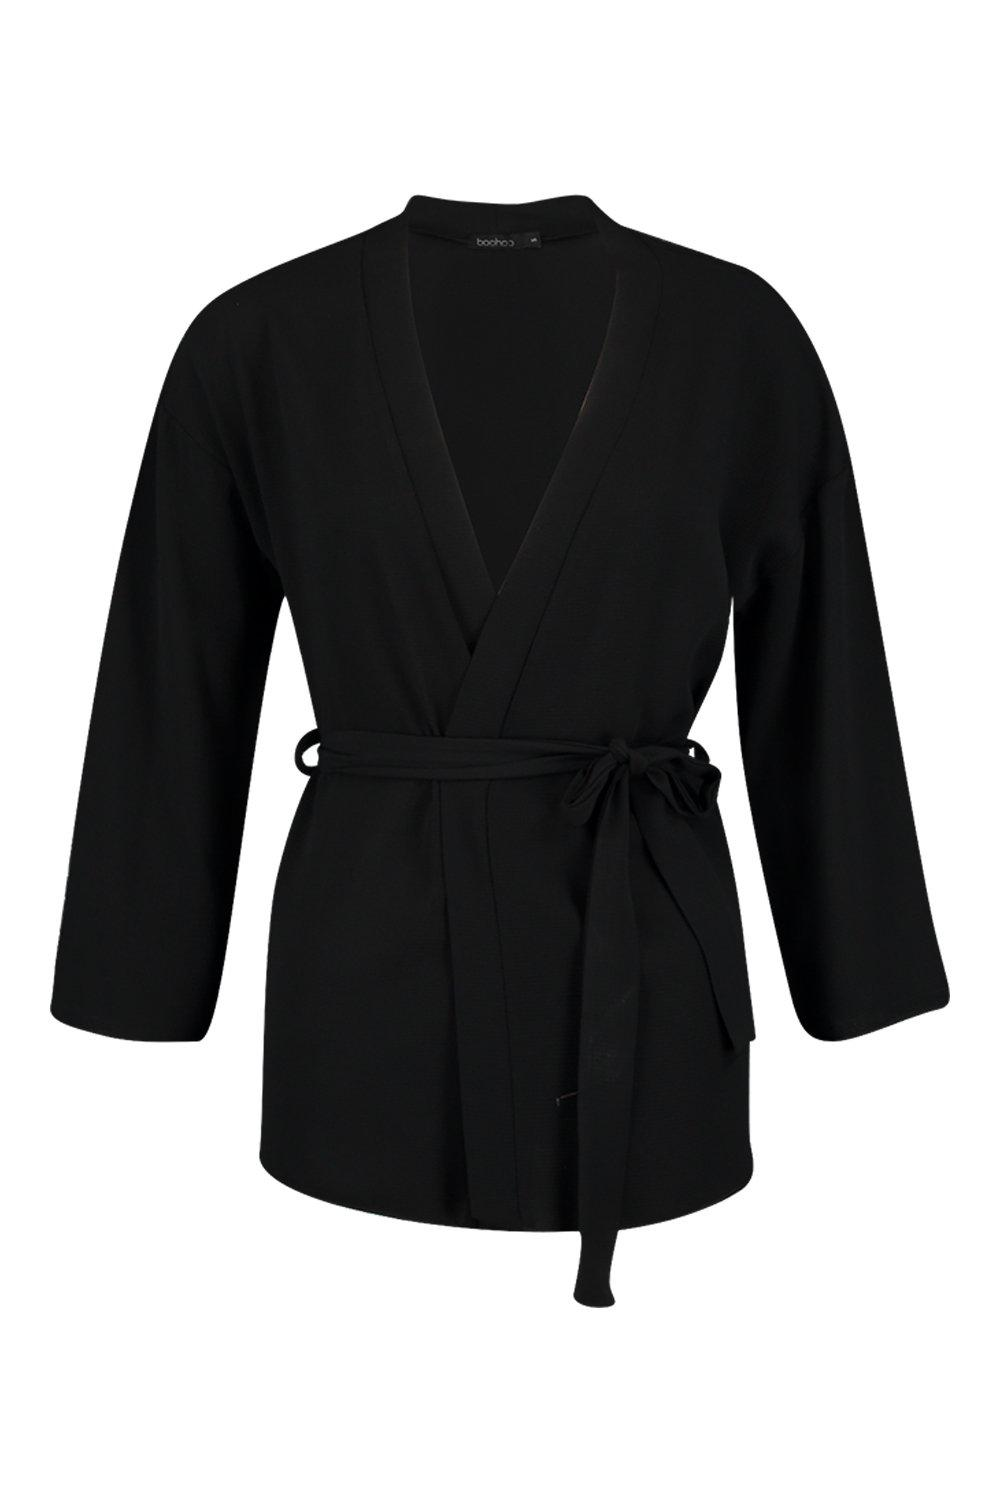 Kimono Belted Woven black Belted Woven Belted Woven Belted black Kimono black Kimono qEwv6